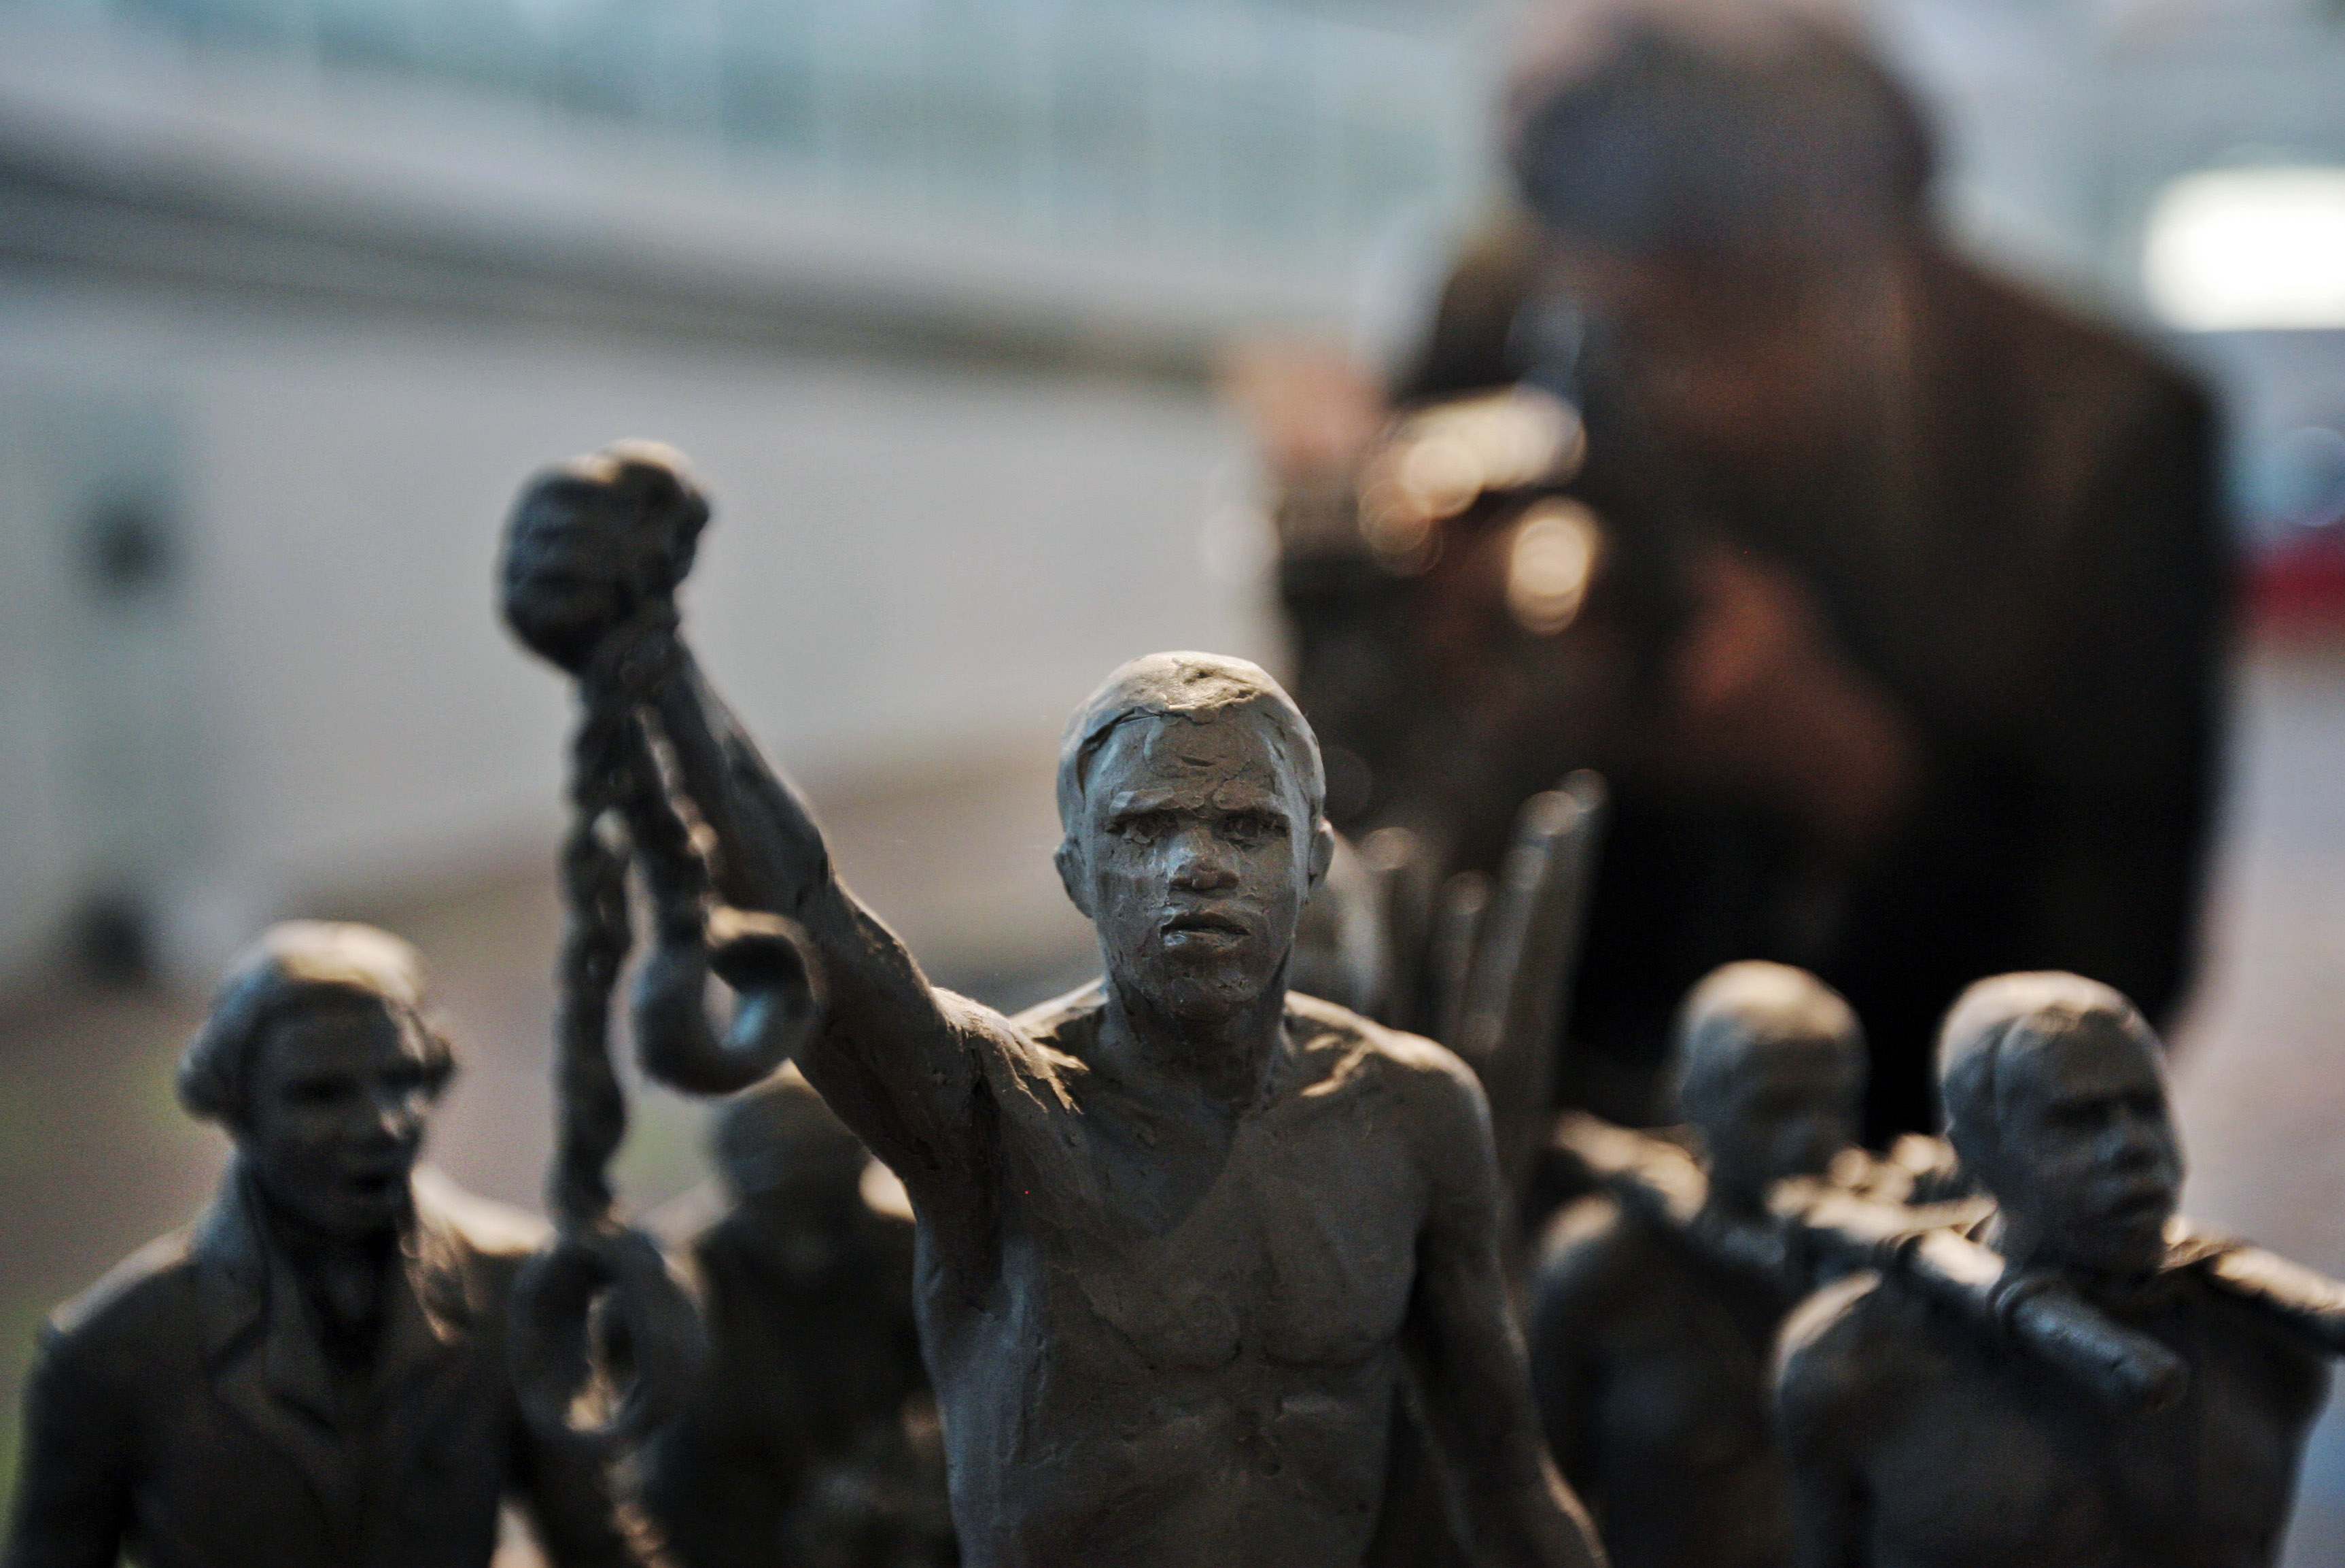 A man photographs a maquette of a statue, at City Hall, London, Monday, Aug.18, 2008. Mayor of London Boris Johnson, attended the presentation of the maquette of a statue, which will stand as a permanent slavery memorial statue.